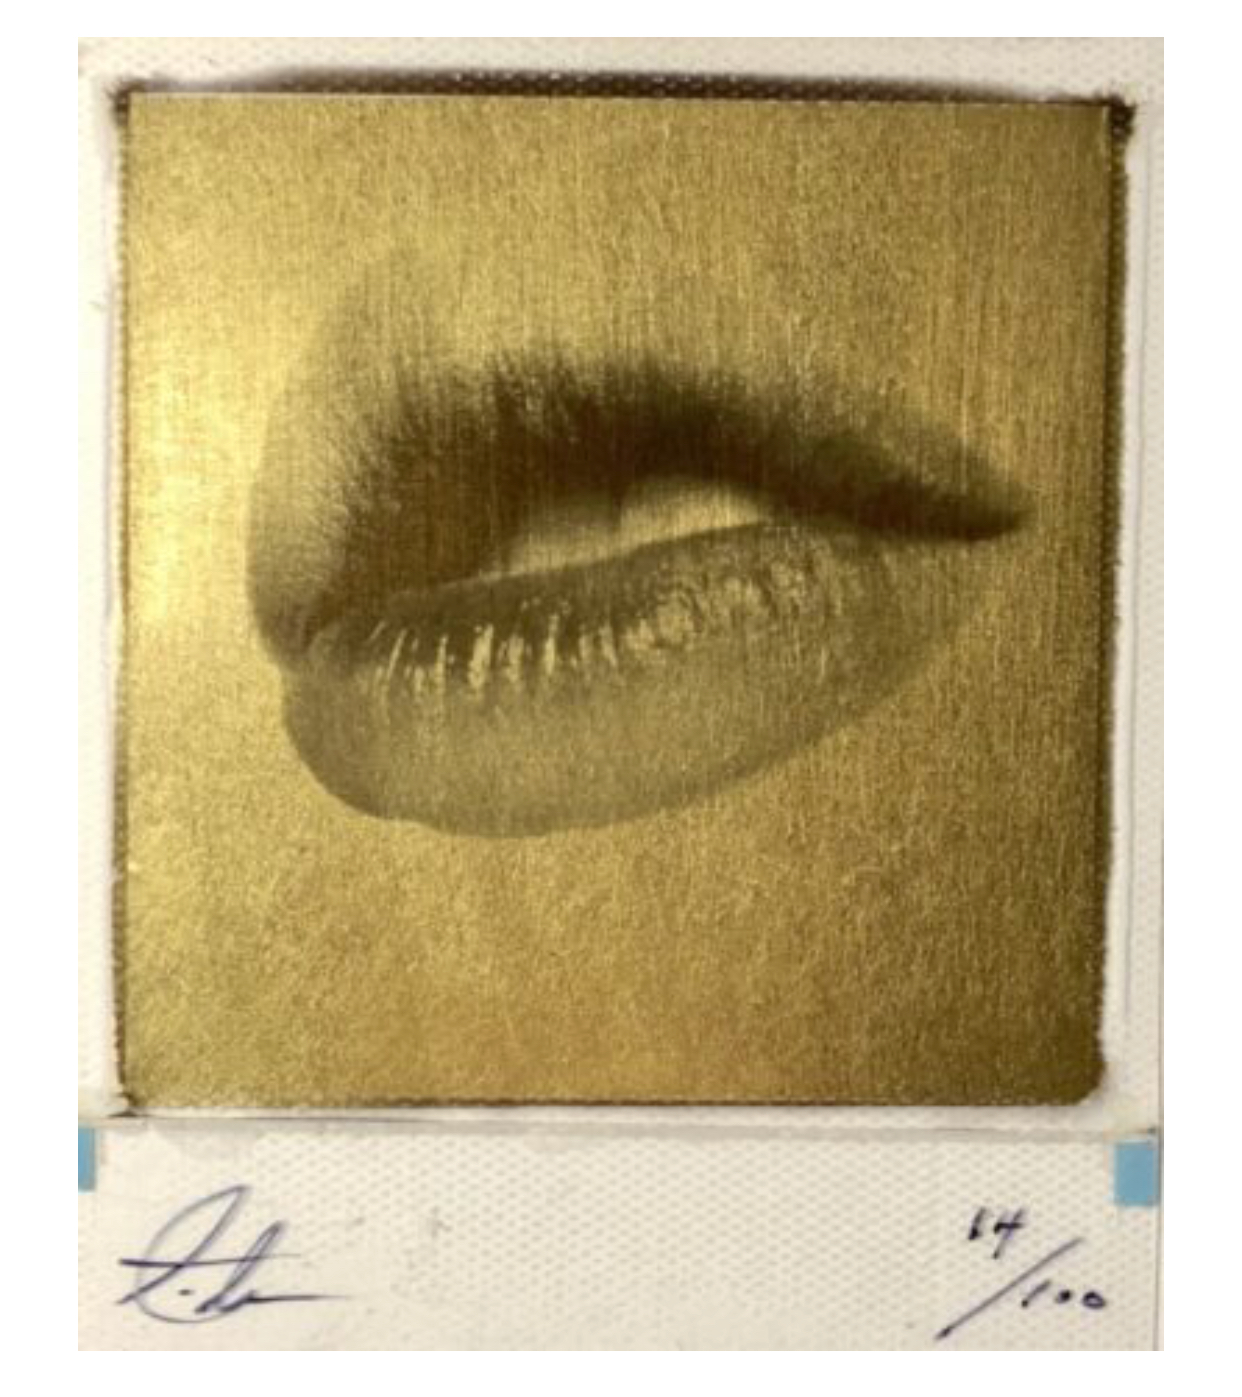 Lips by Andrew J Millar. 24 carat gold leaf on Polaroid.